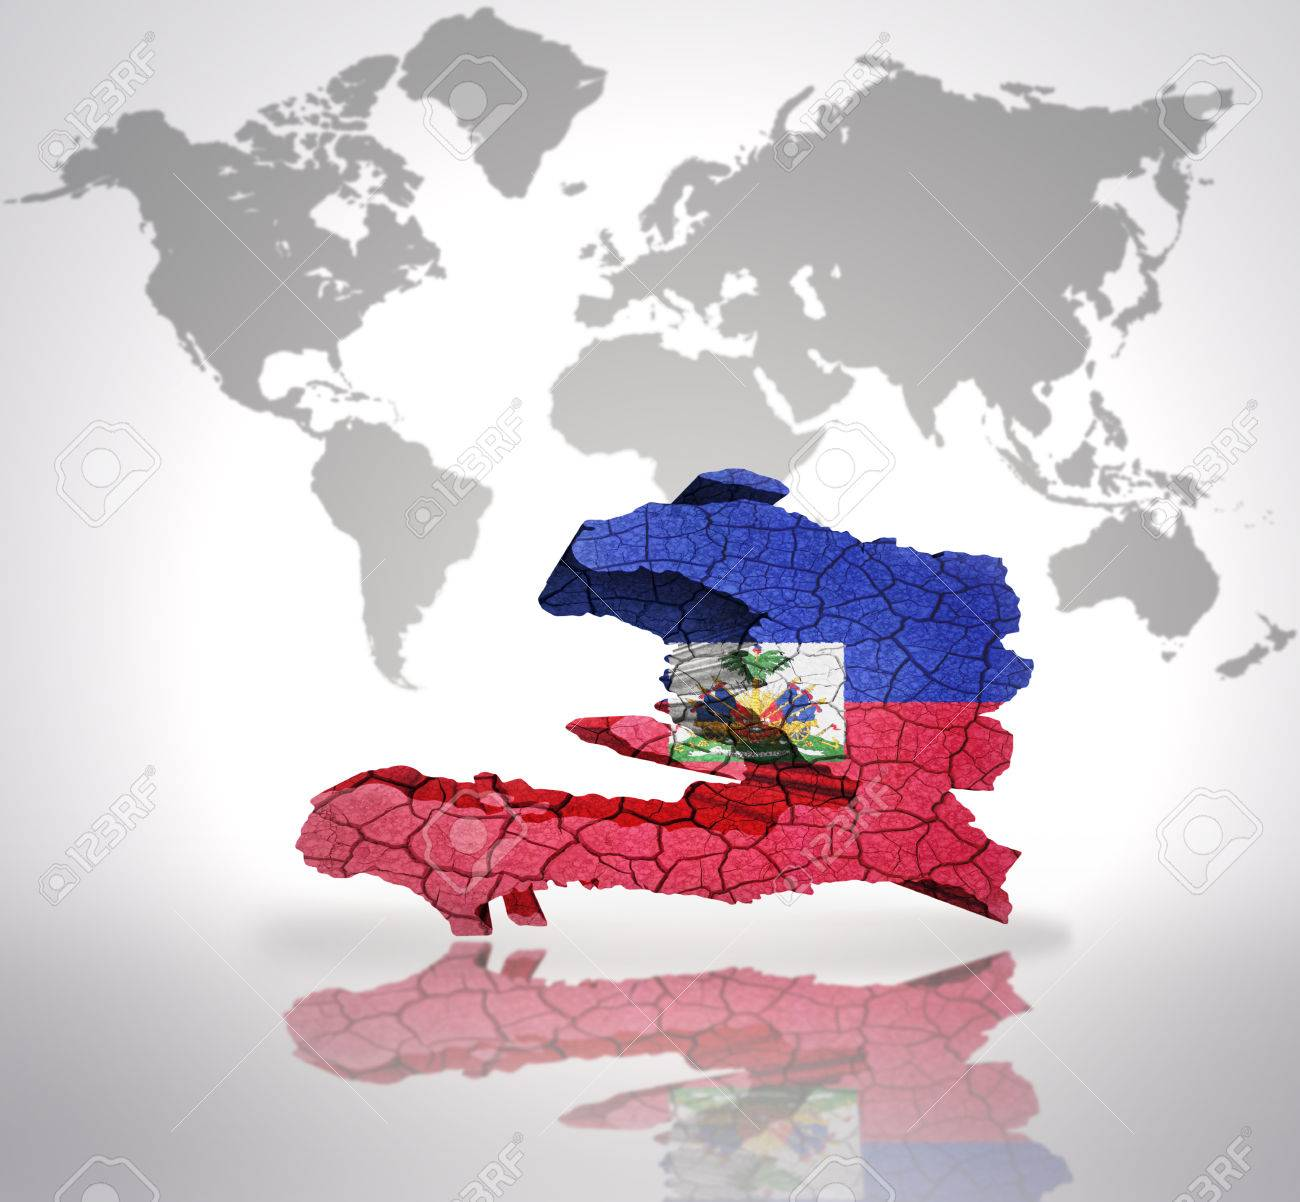 Map of haiti with haiti flag on a world map background stock photo map of haiti with haiti flag on a world map background stock photo 32762946 gumiabroncs Images